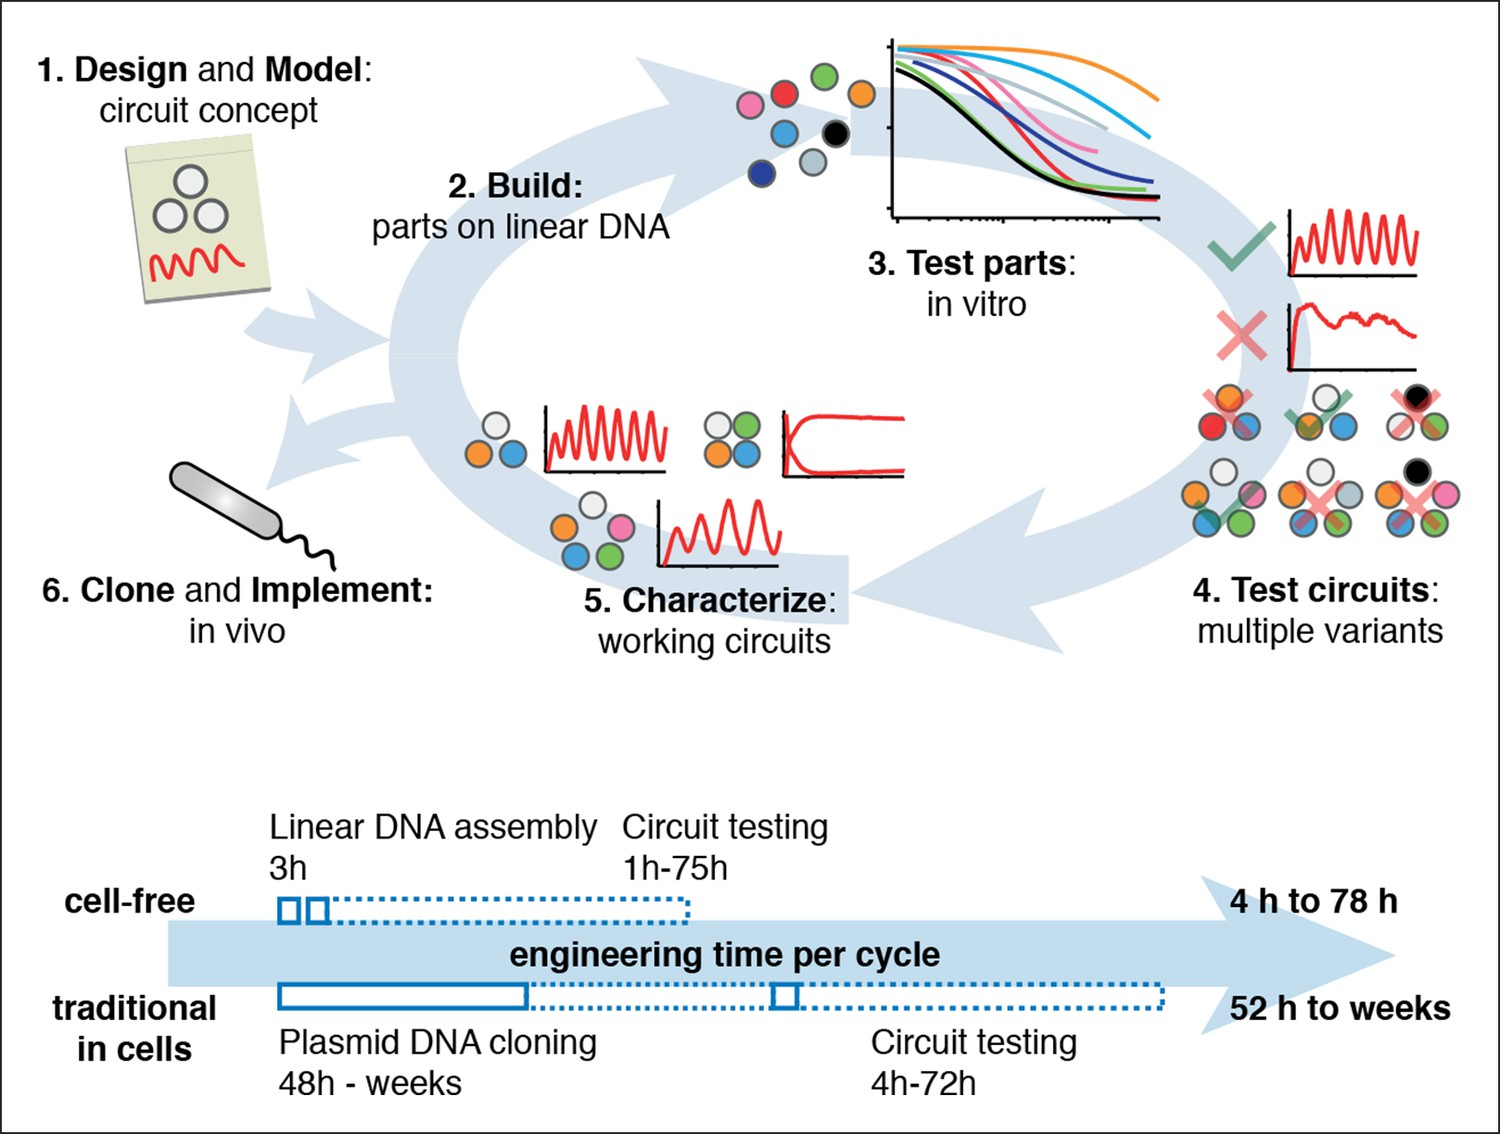 Rapid Cell Free Forward Engineering Of Novel Genetic Ring What Are Parallel Circuit Systems Allow And Extensive Characterization Biological